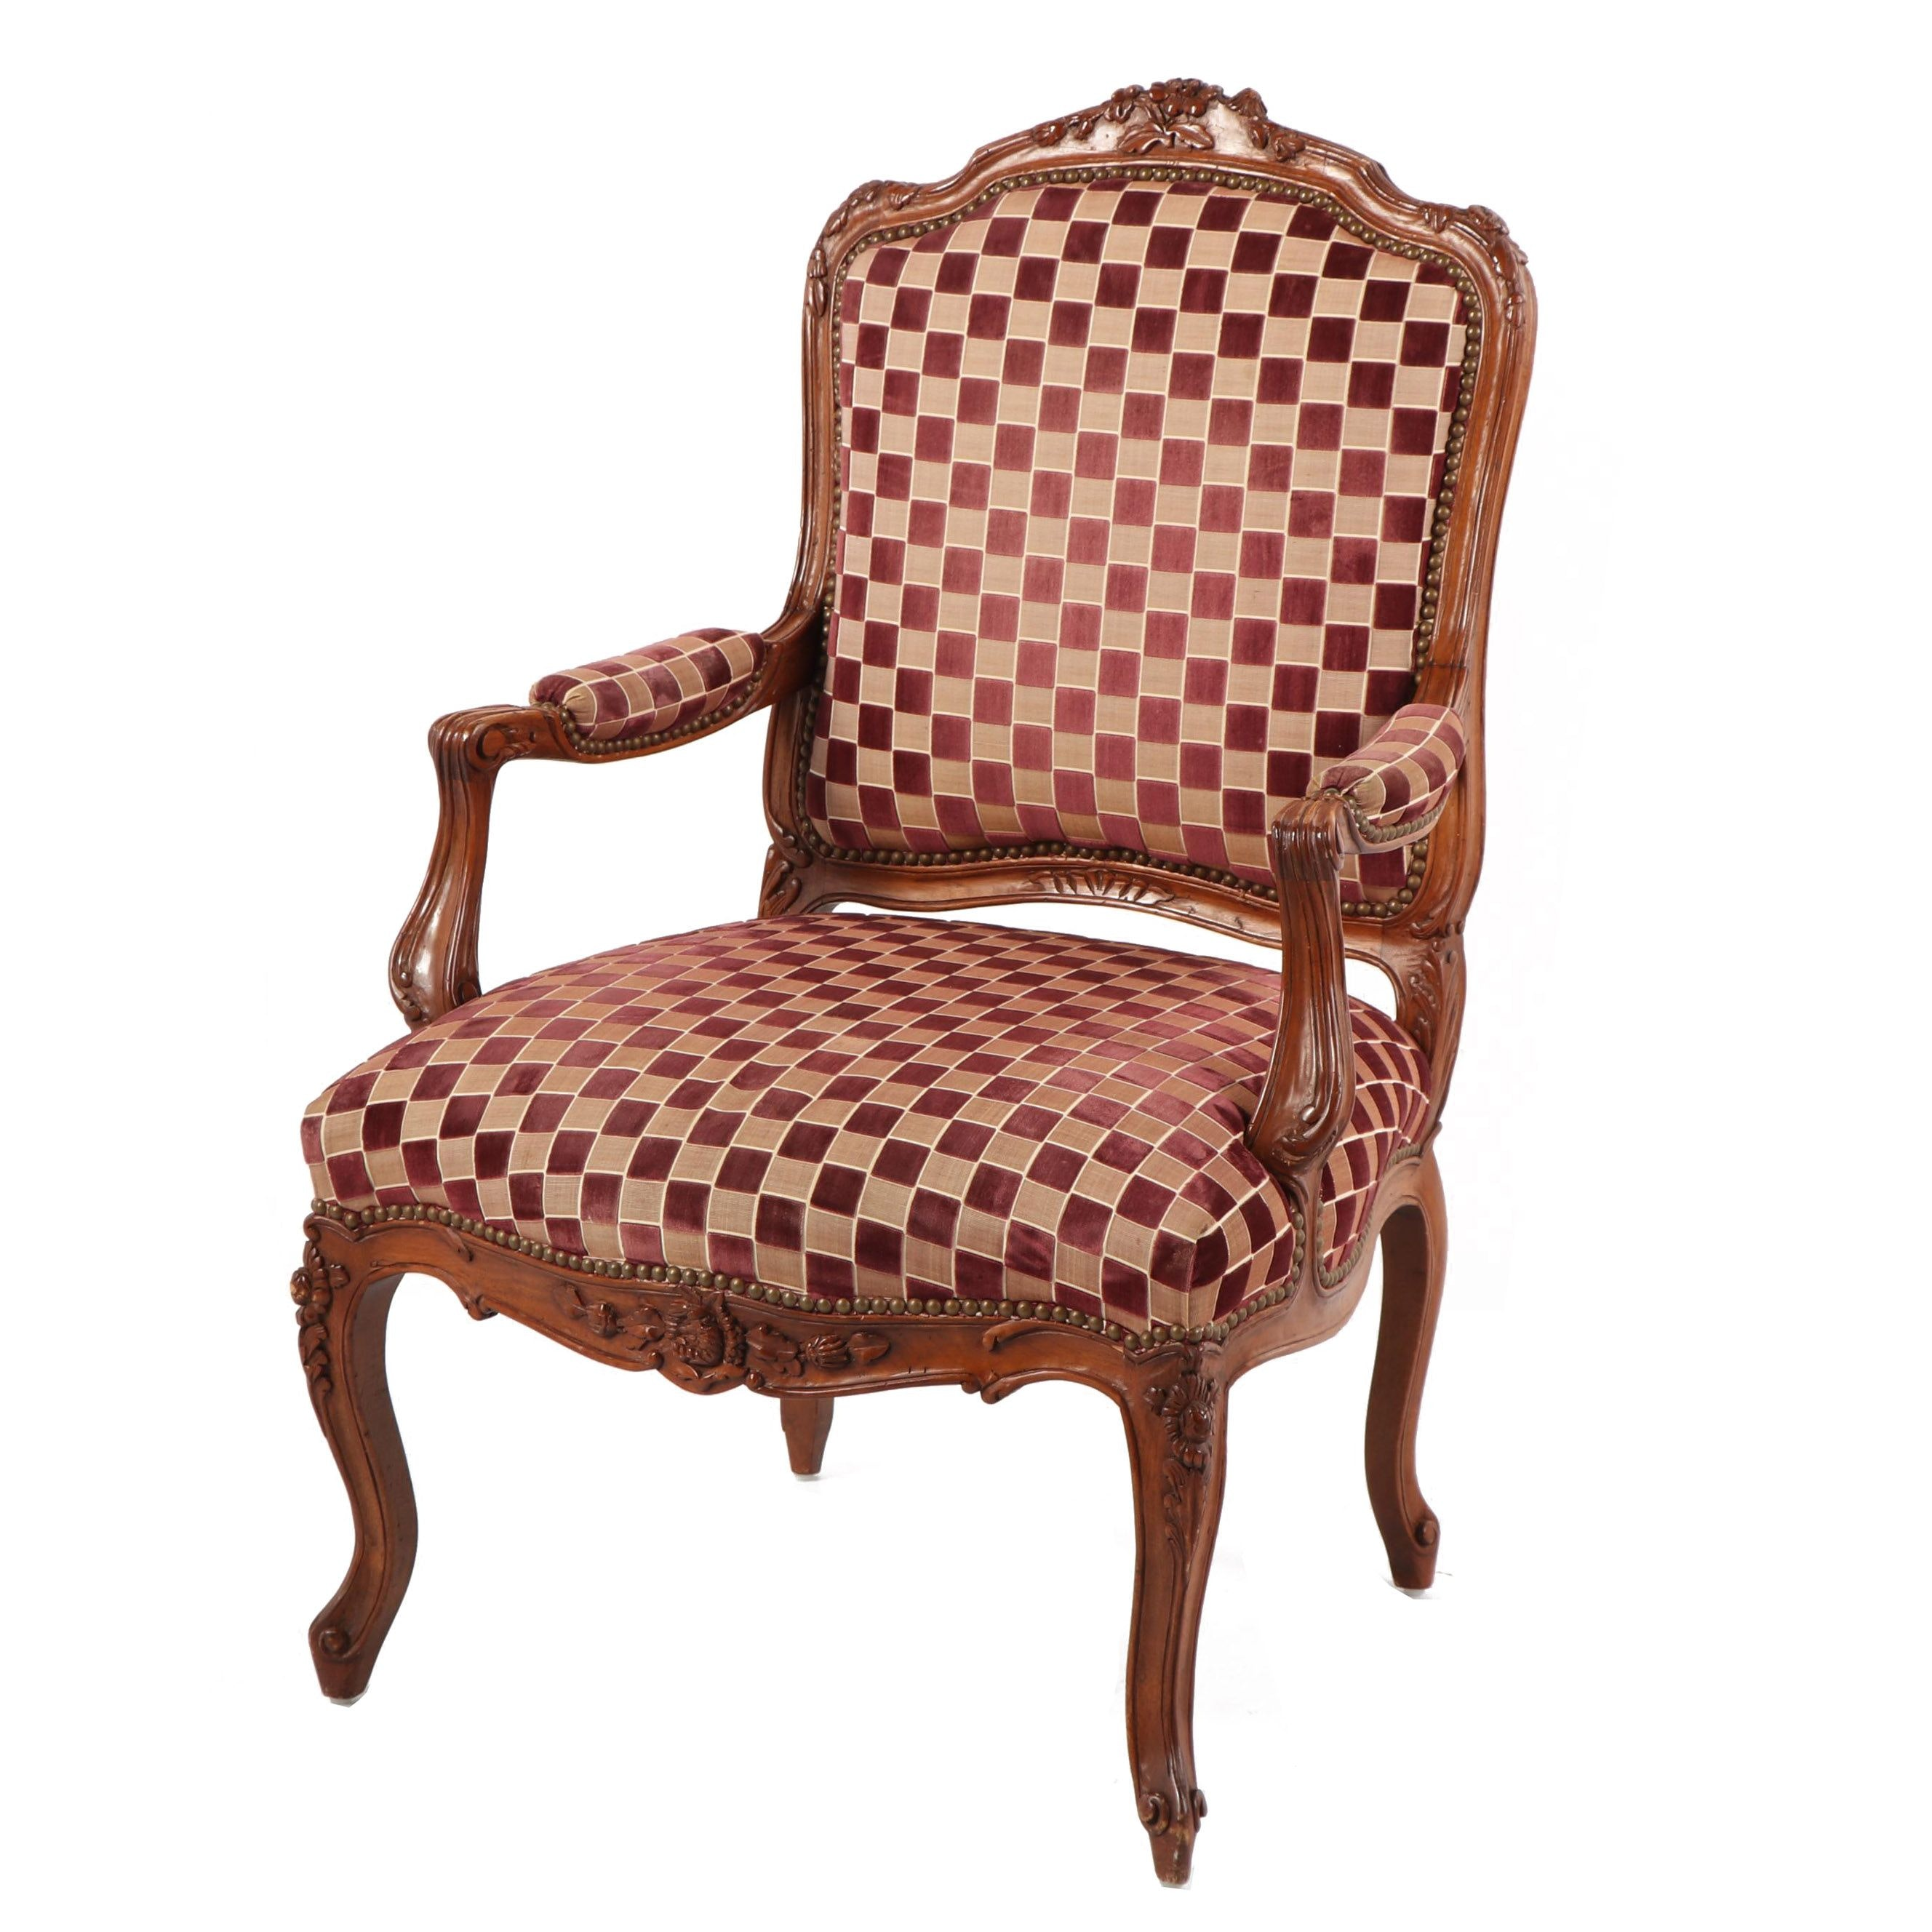 Cream and Black Checked Upholstered Louis XV Style Armchair